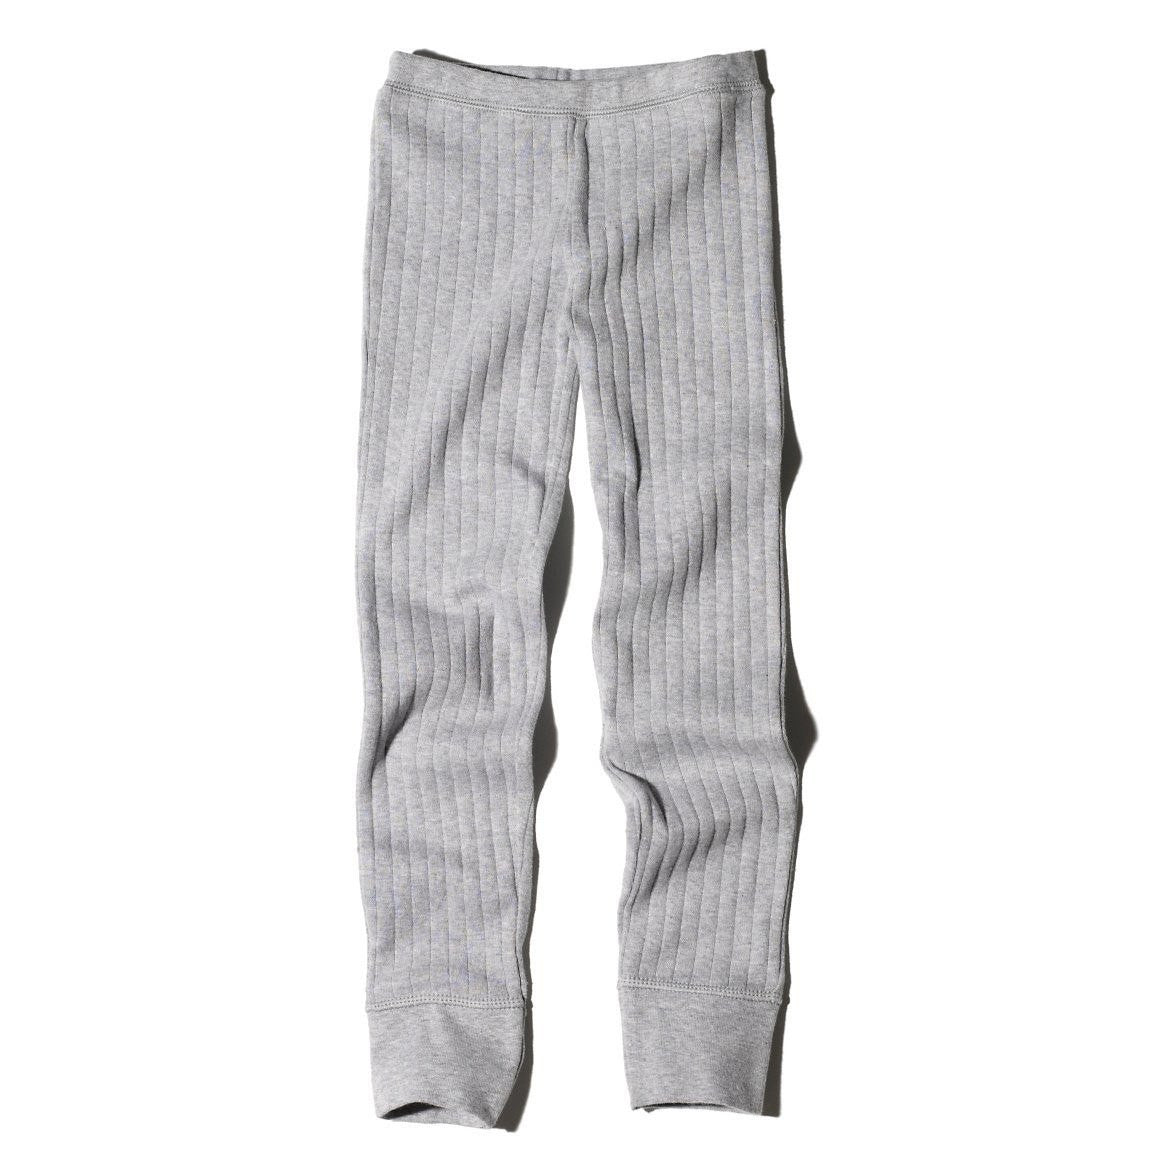 Goat-Milk Girls Dropneedle Thermal Bottoms - White